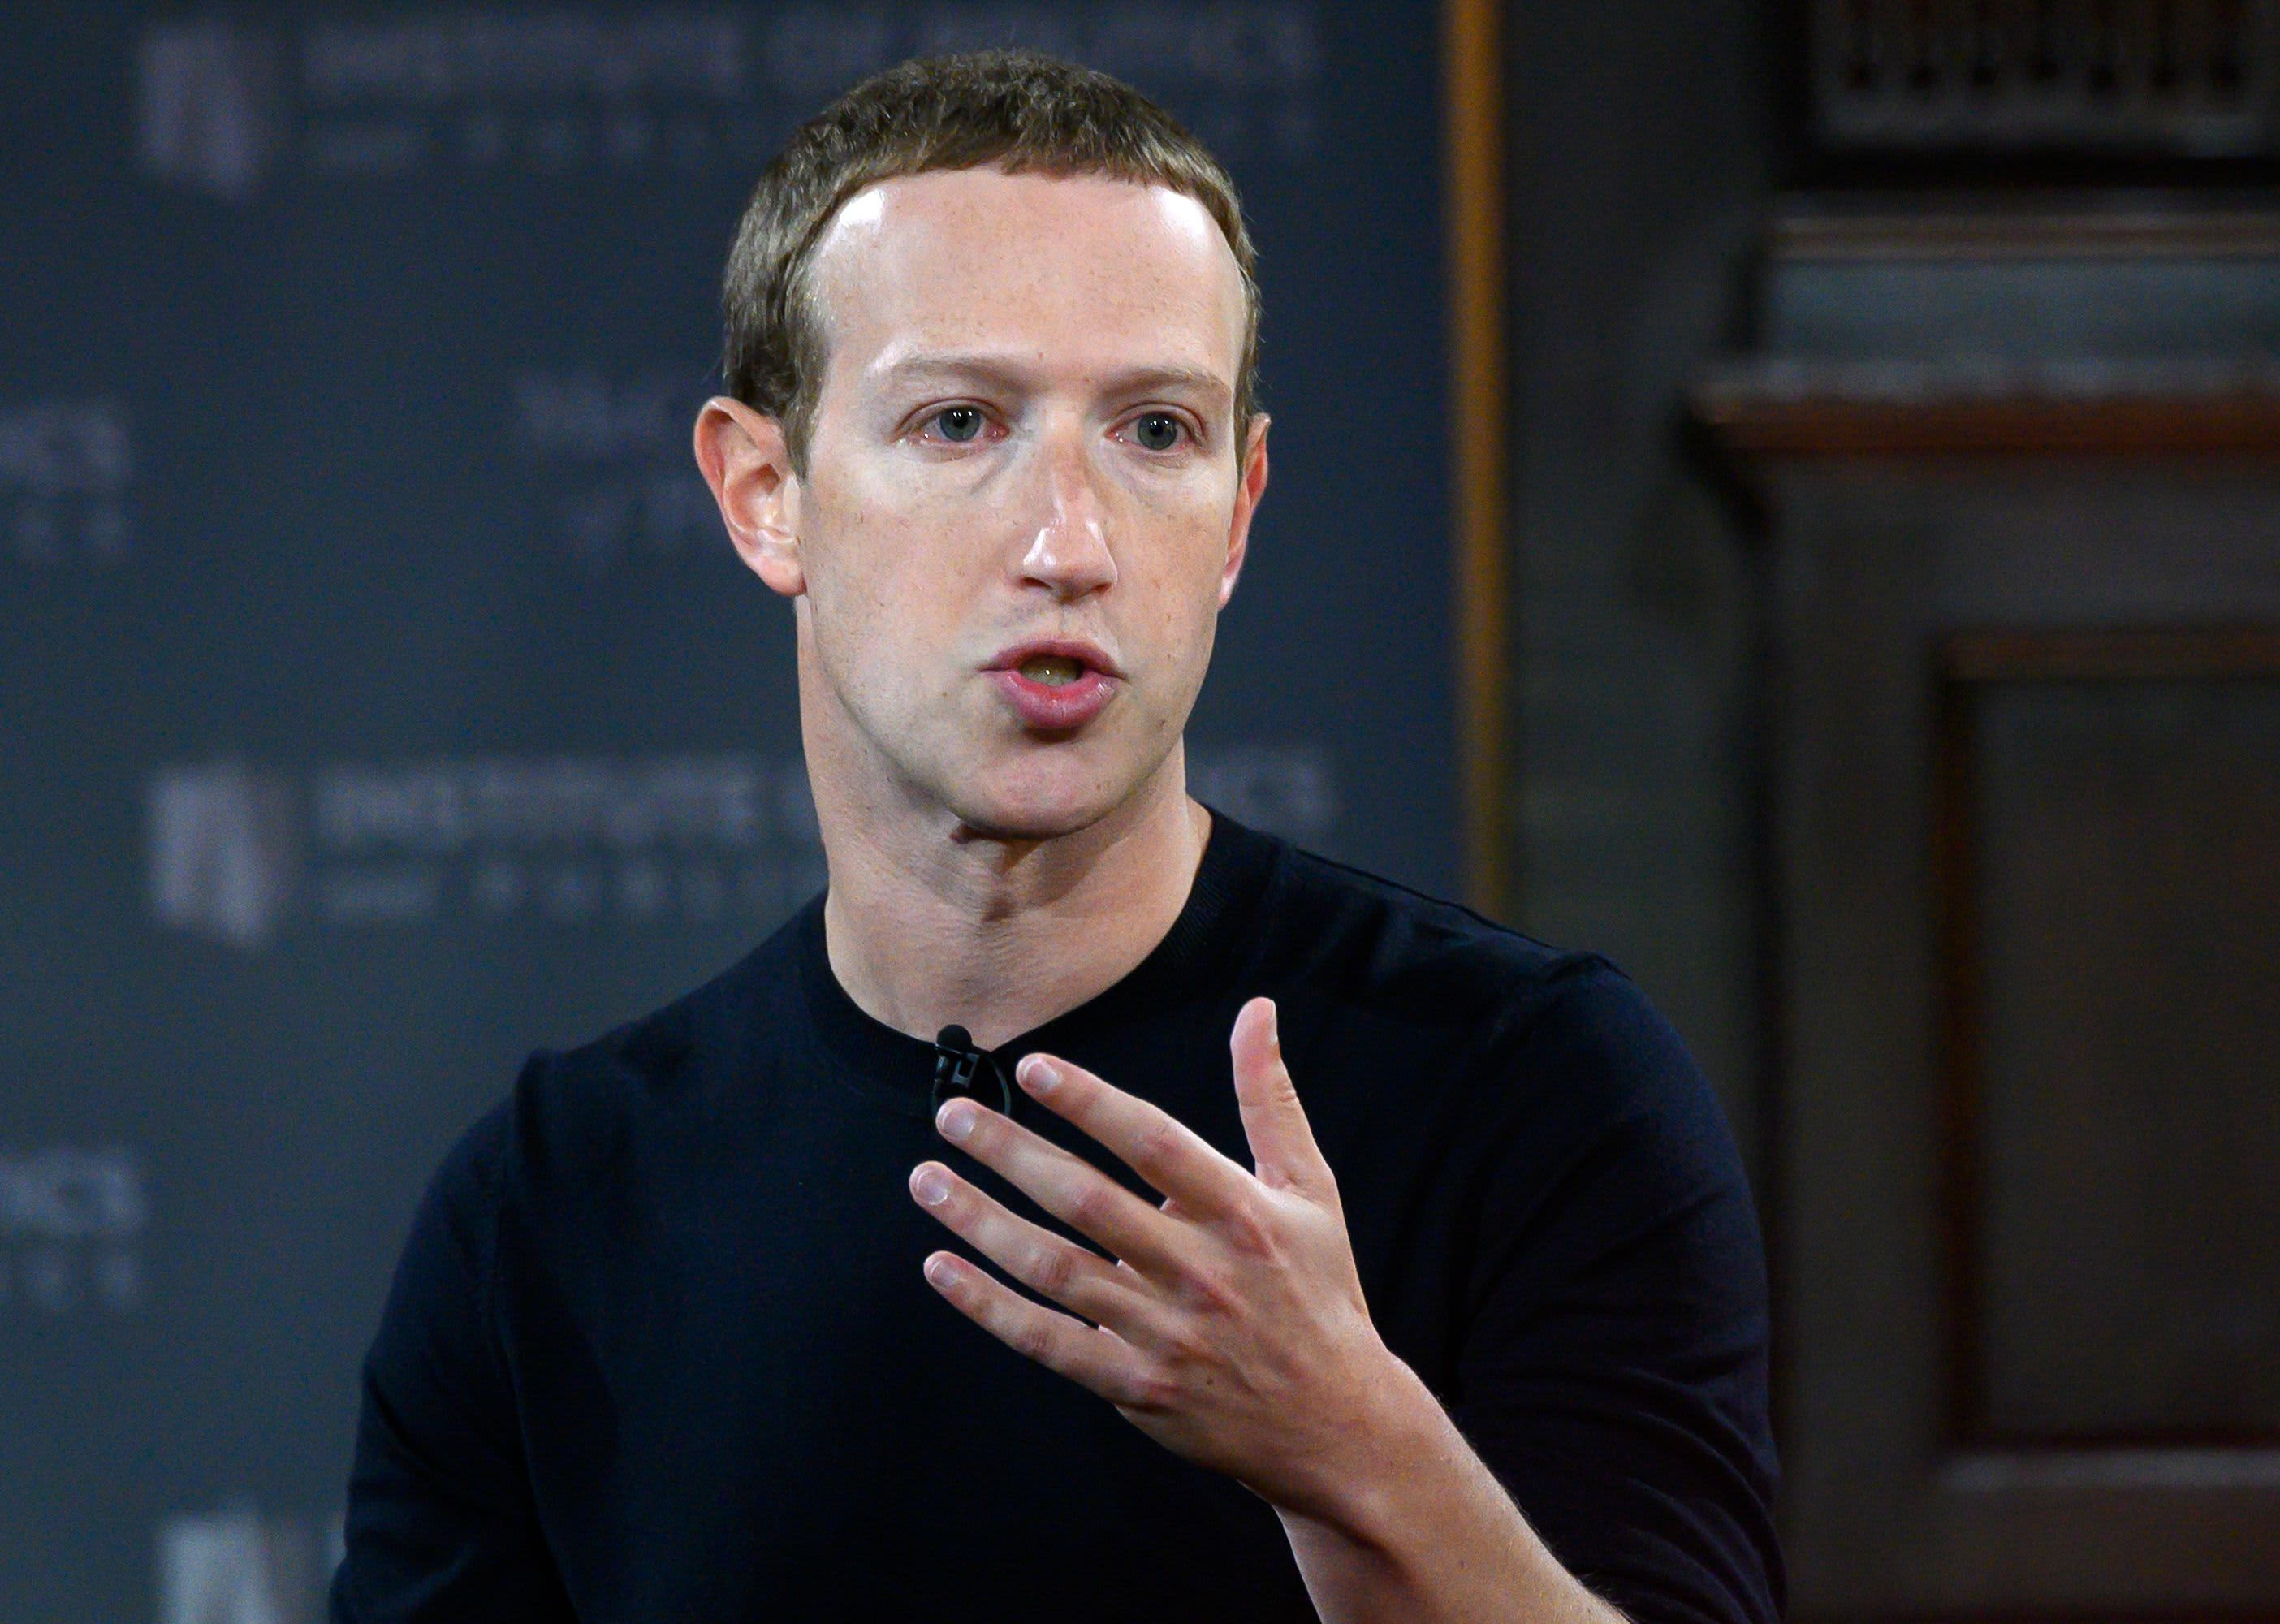 Mark Zuckerberg says Facebook's top priority is setting up FTC-mandated privacy program